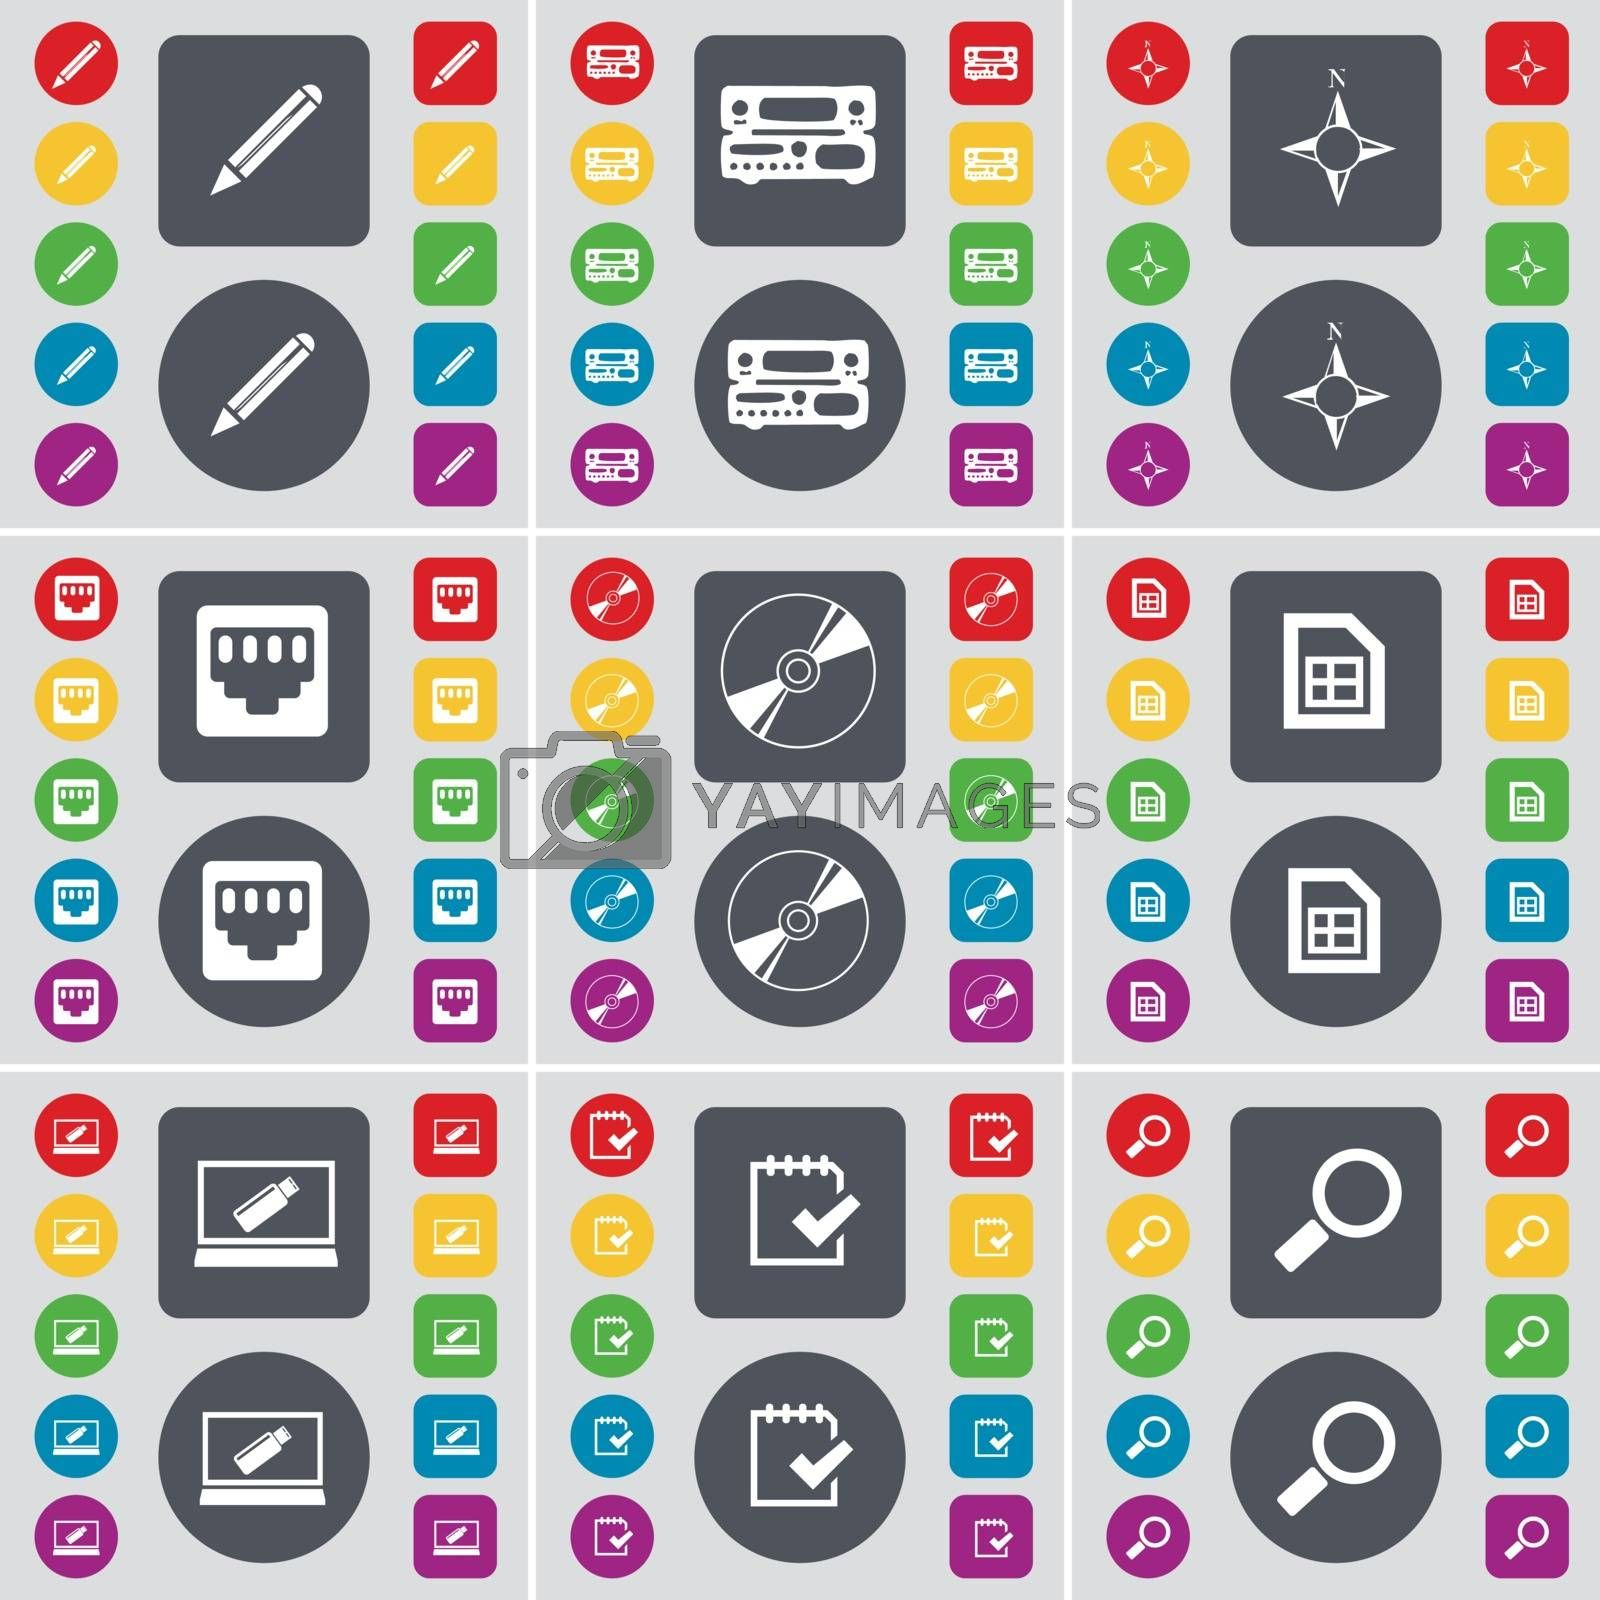 Royalty free image of Pencil, Record-player, Compass, LAN socket, Disk, File, Laptop, Survey, Magnifying glass icon symbol. A large set of flat, colored buttons for your design. Vector by serhii_lohvyniuk